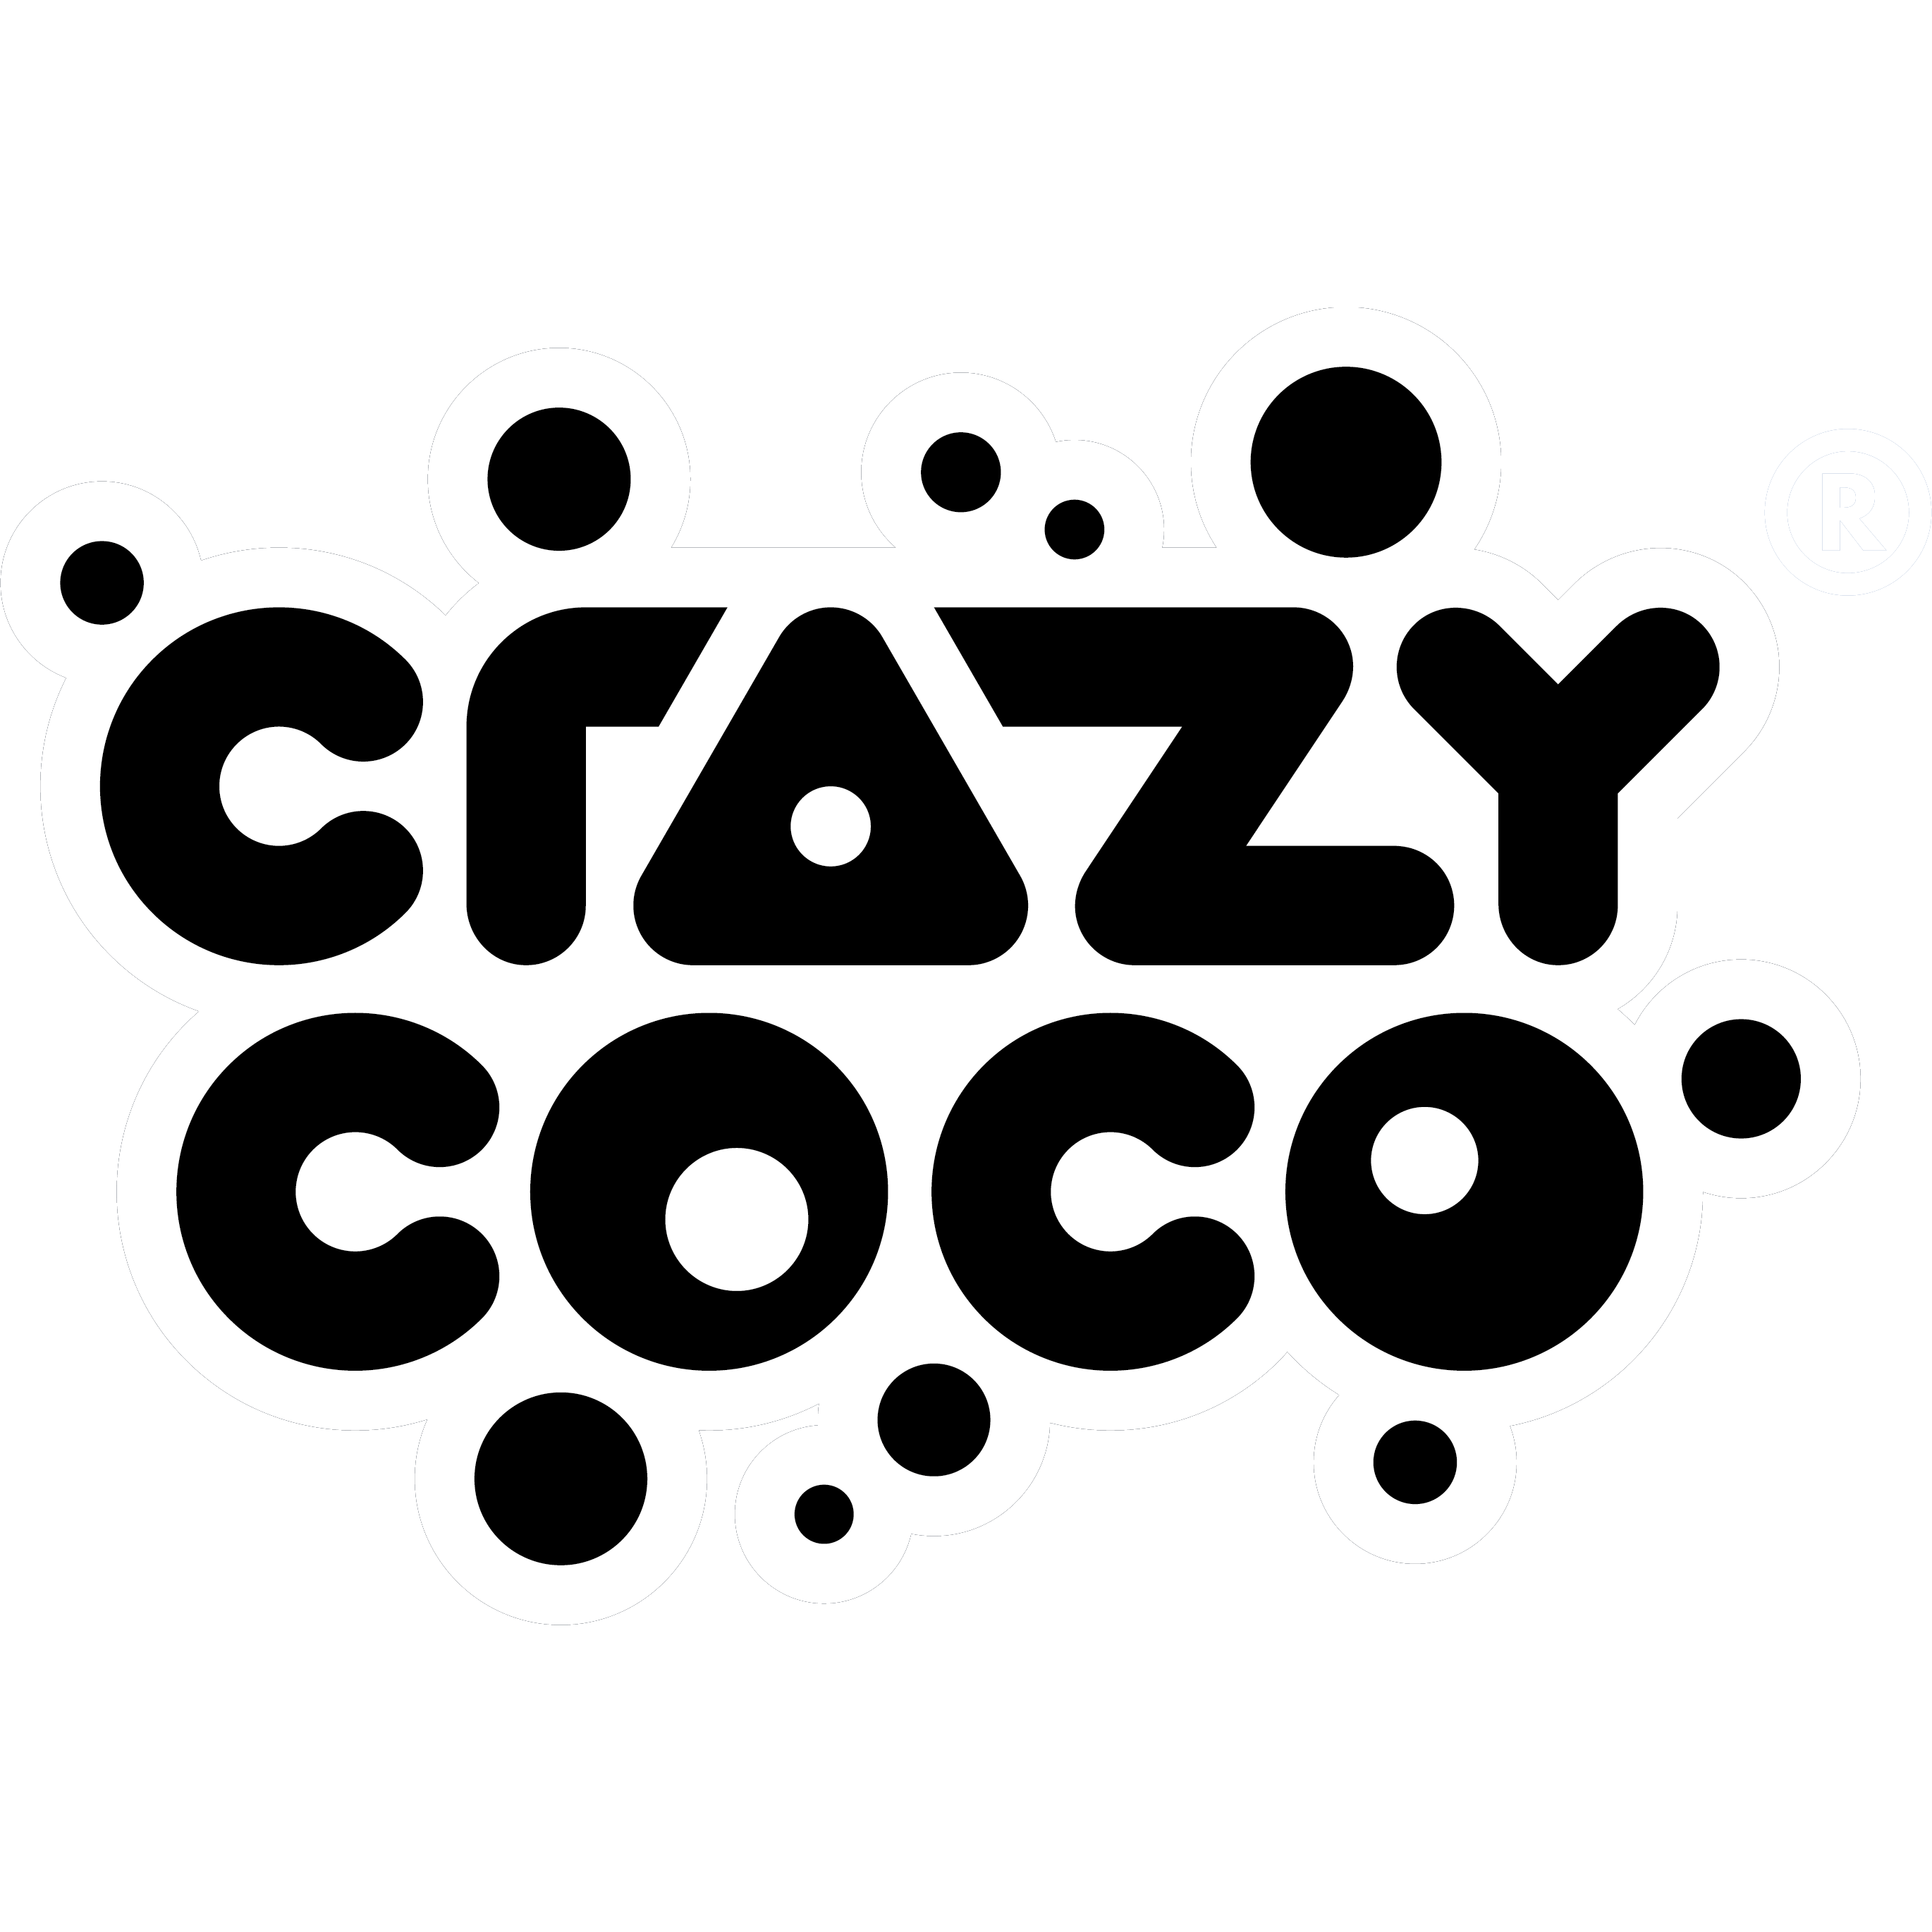 CRAZYCOCO CS:GO Team